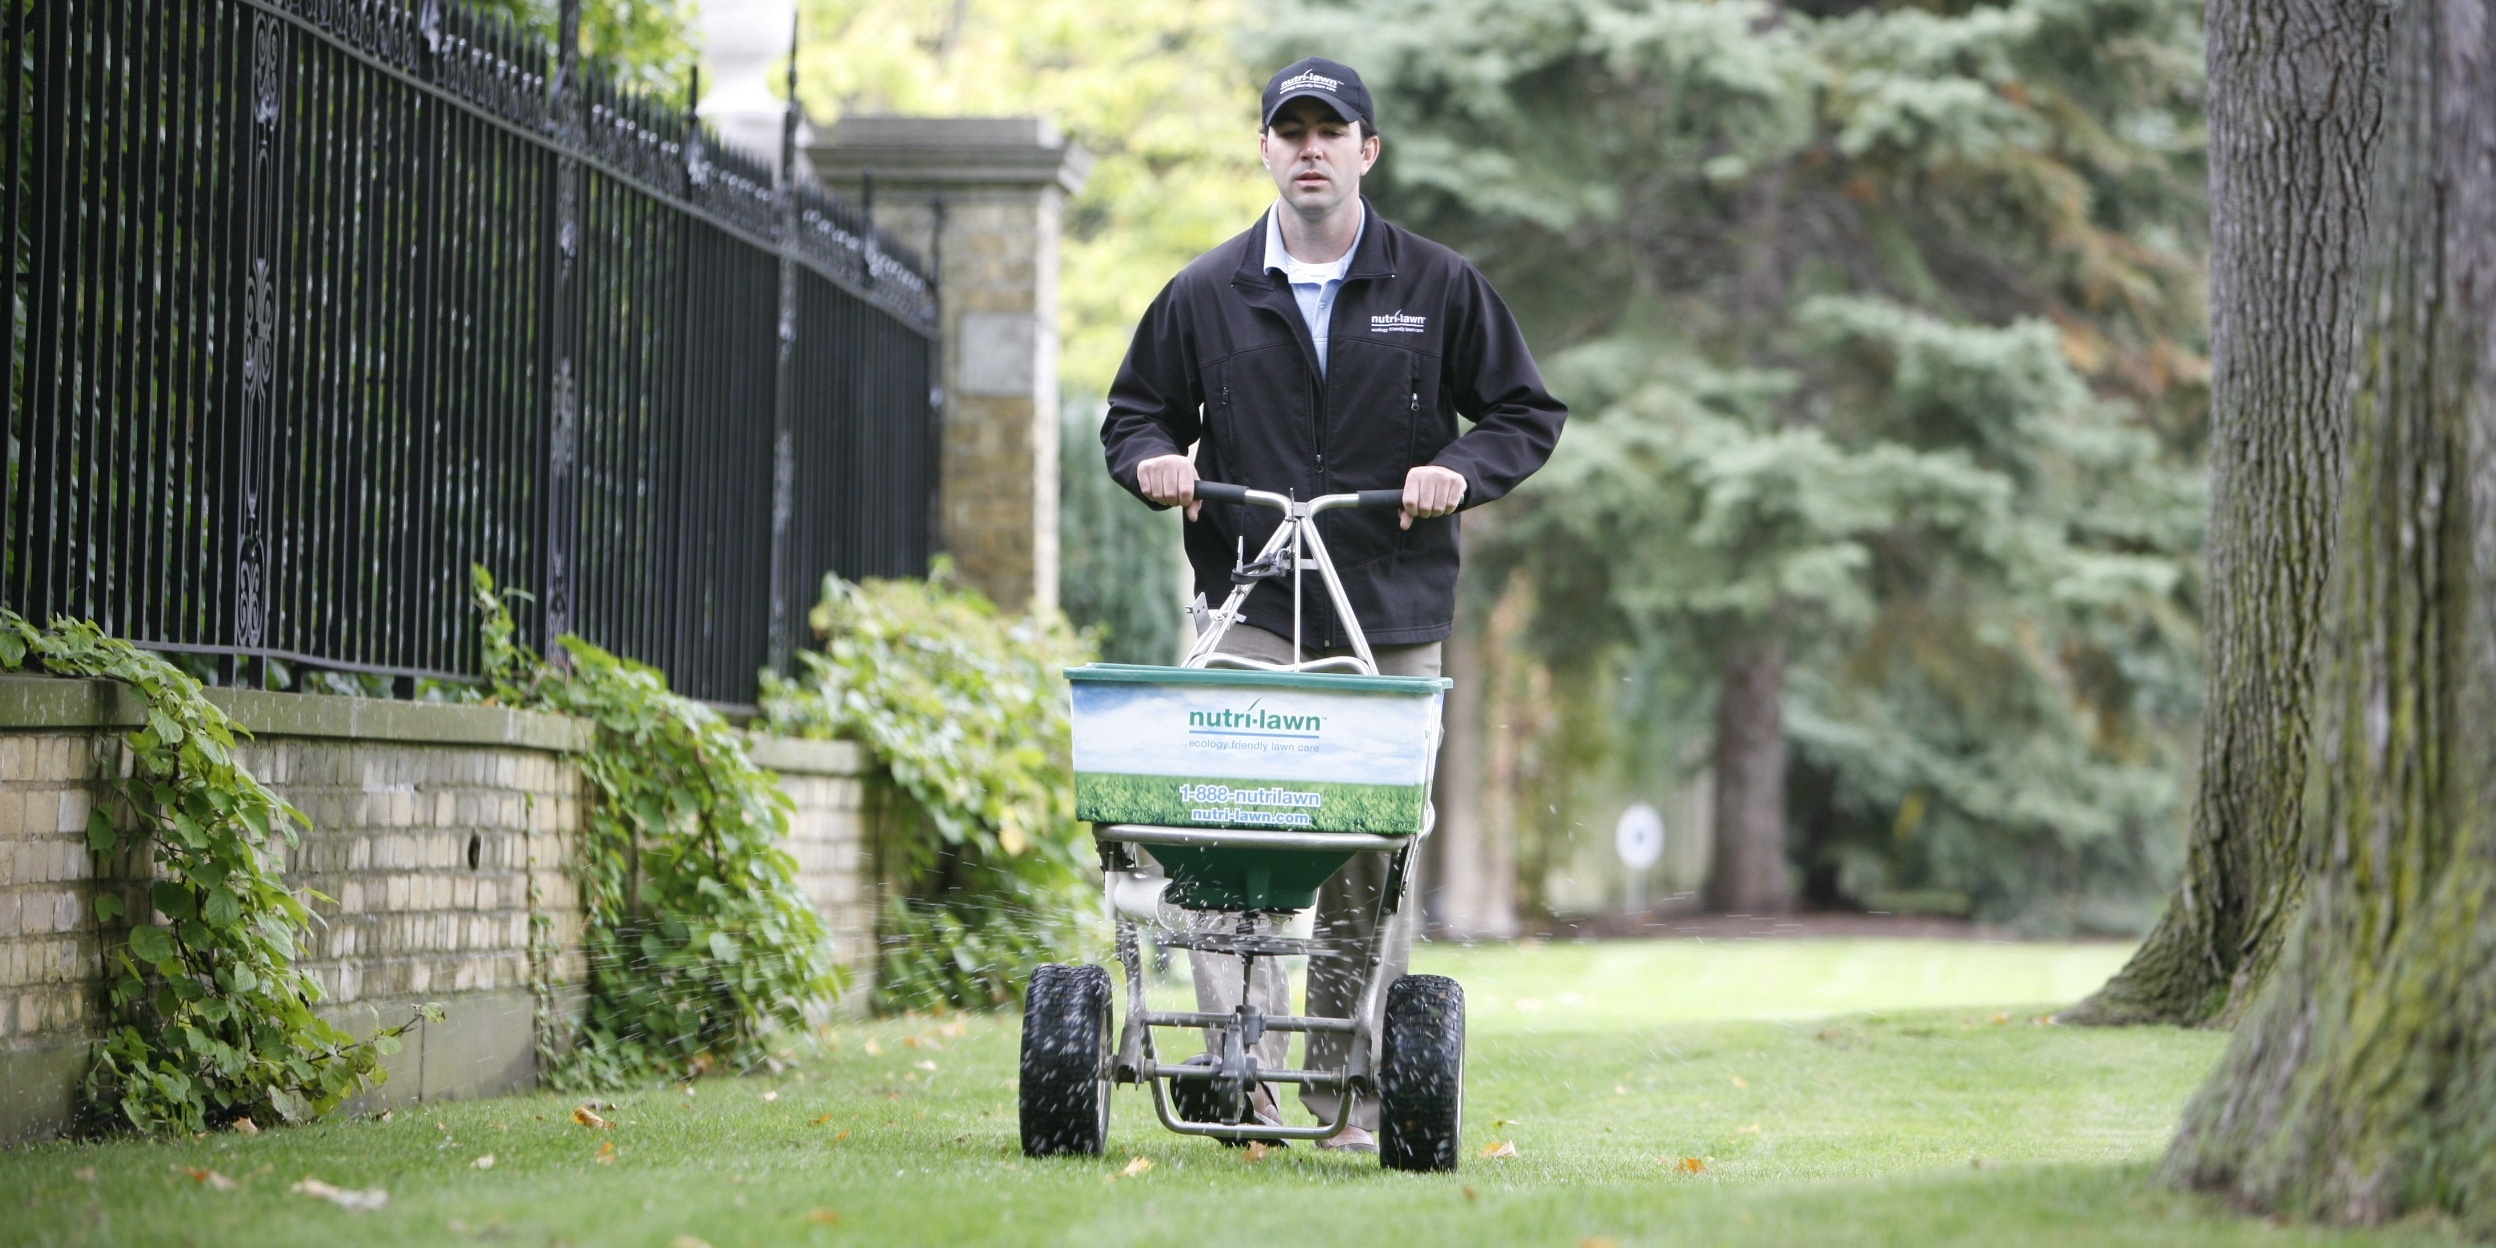 Fall is the ideal time for an annual lime application, since the lawn is actively growing.